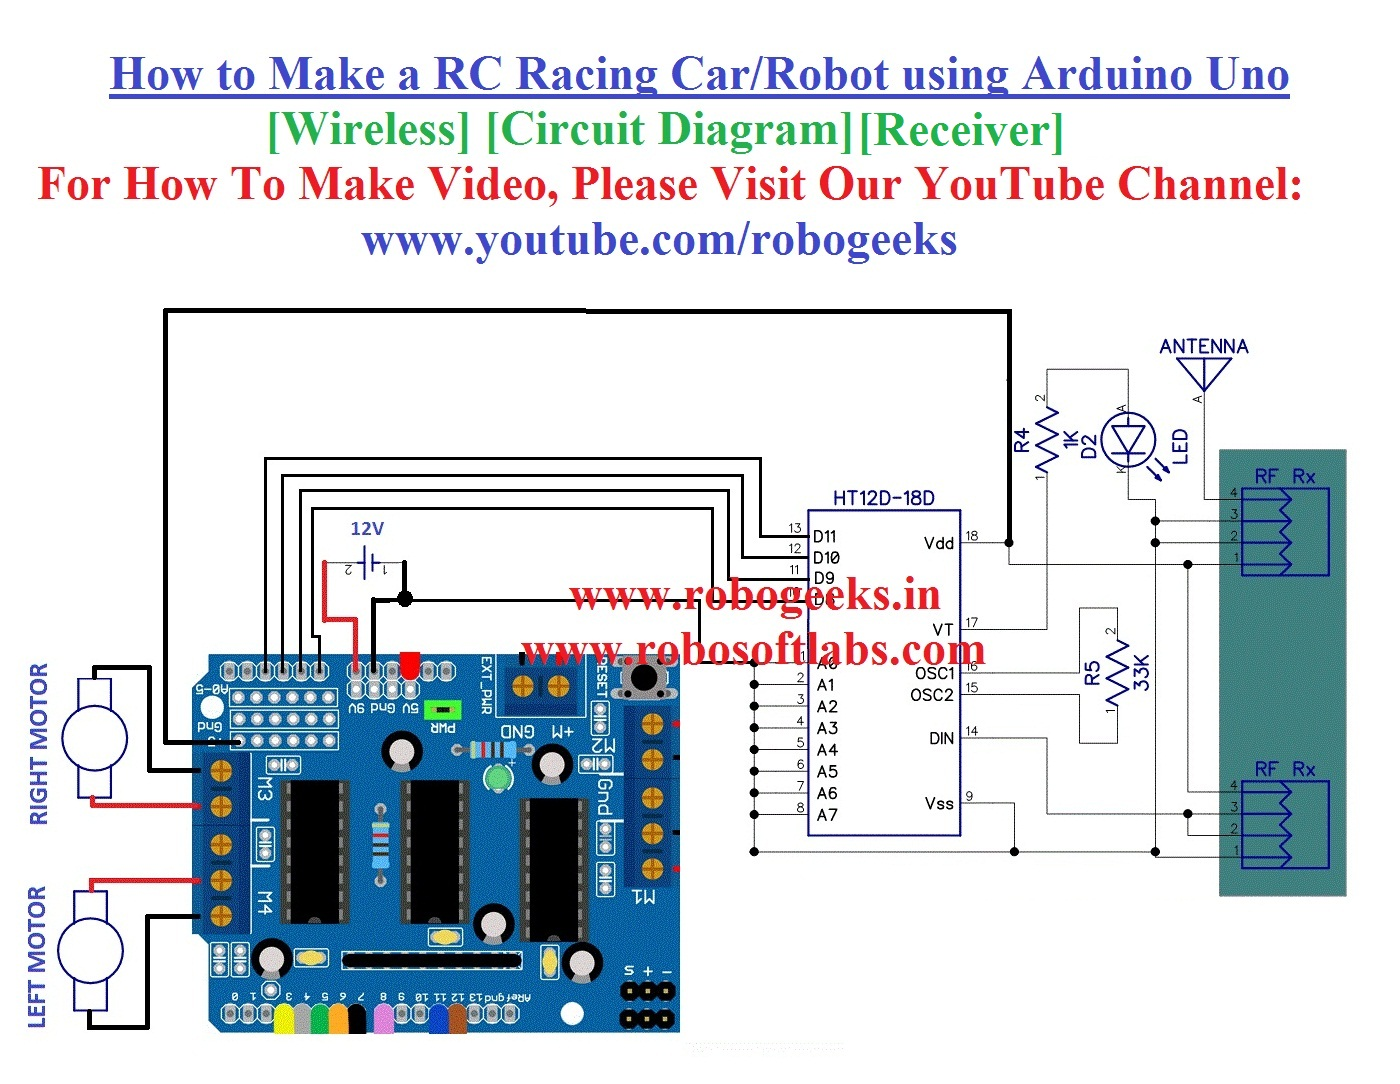 how to make a rc racing car using arduino uno wireless receiver robogeeks